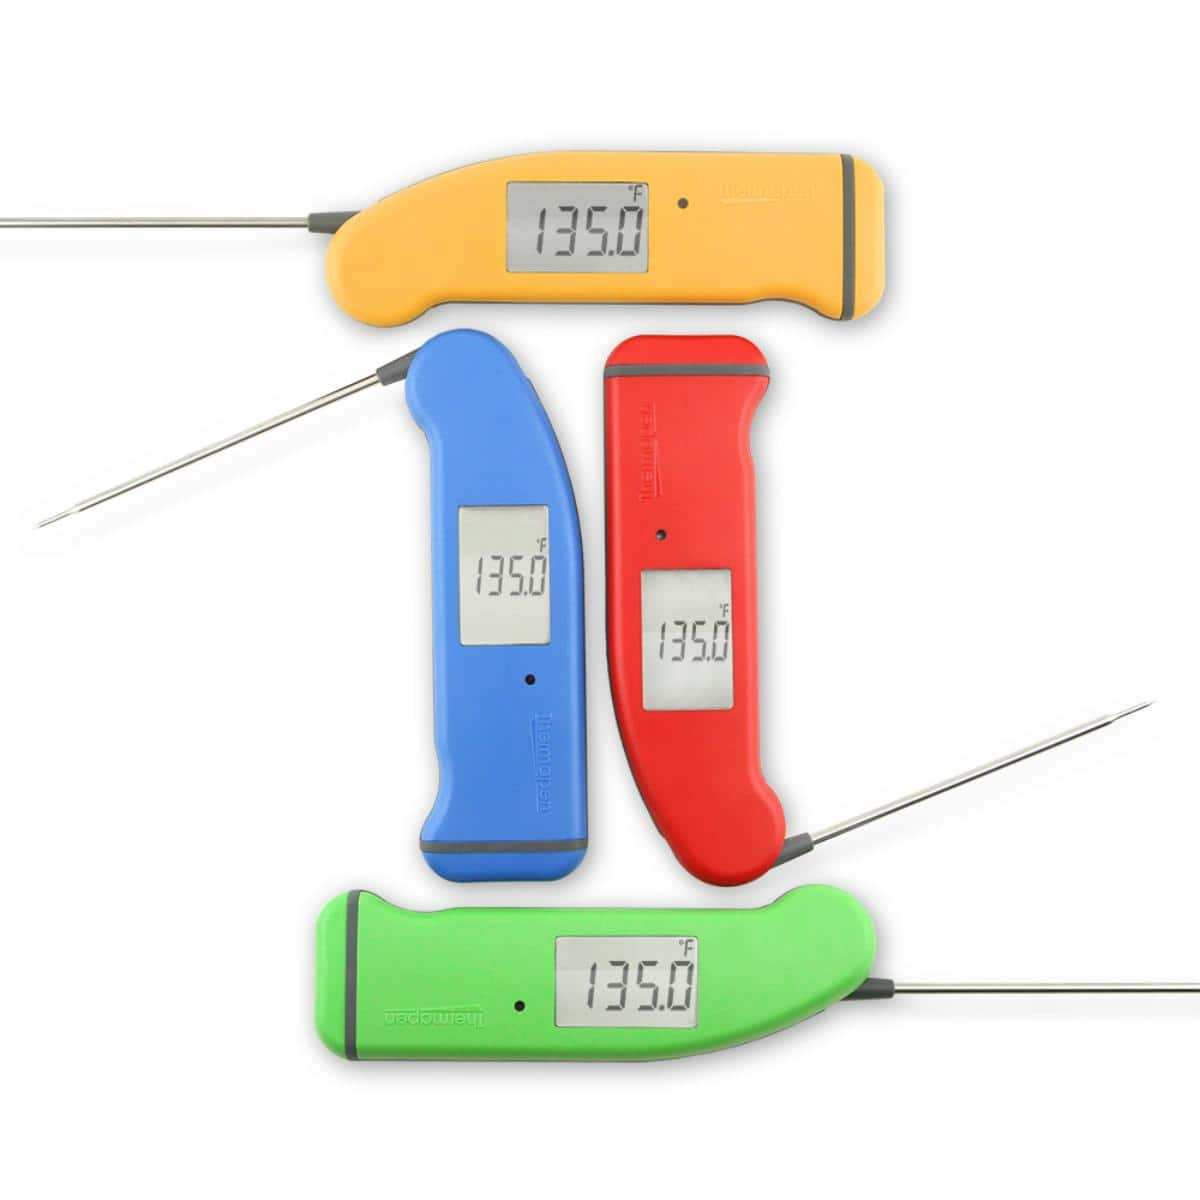 20% off Thermapen Mk4  $79.20 + $3.99 S/H @ Thermoworks.com